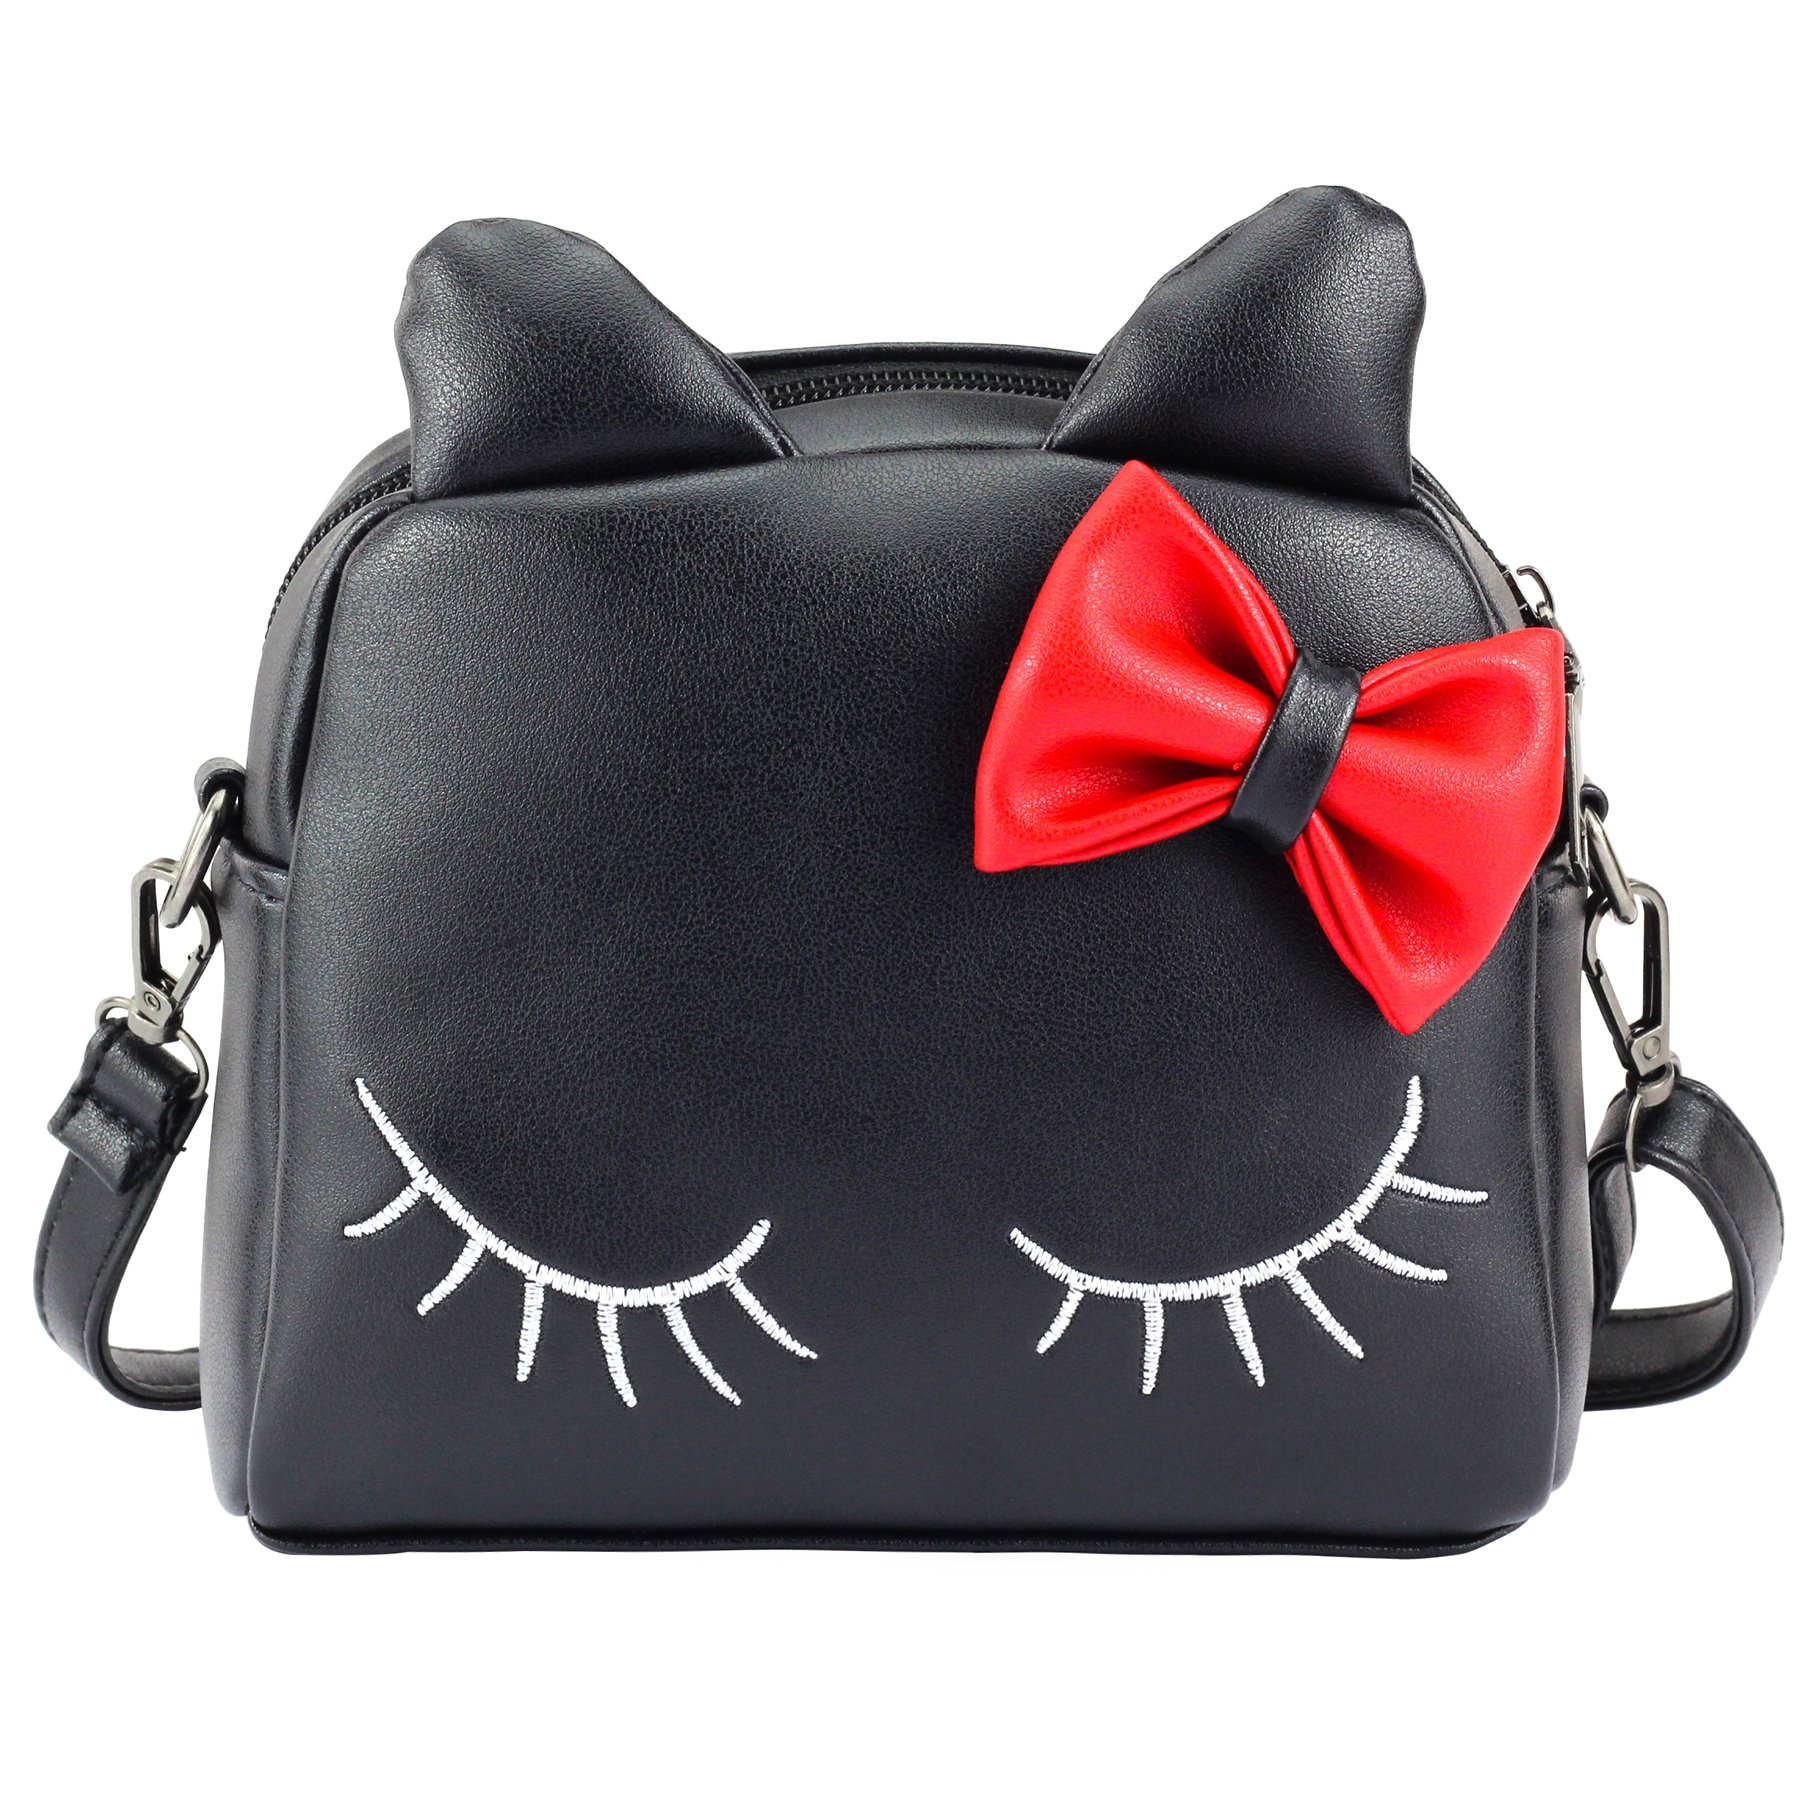 CMK Trendy Kids Cute Little Girls Cat Purse for Toddler Kids Mini Backpack  Bags with Bows (82003 Black)  406d152d2bc92